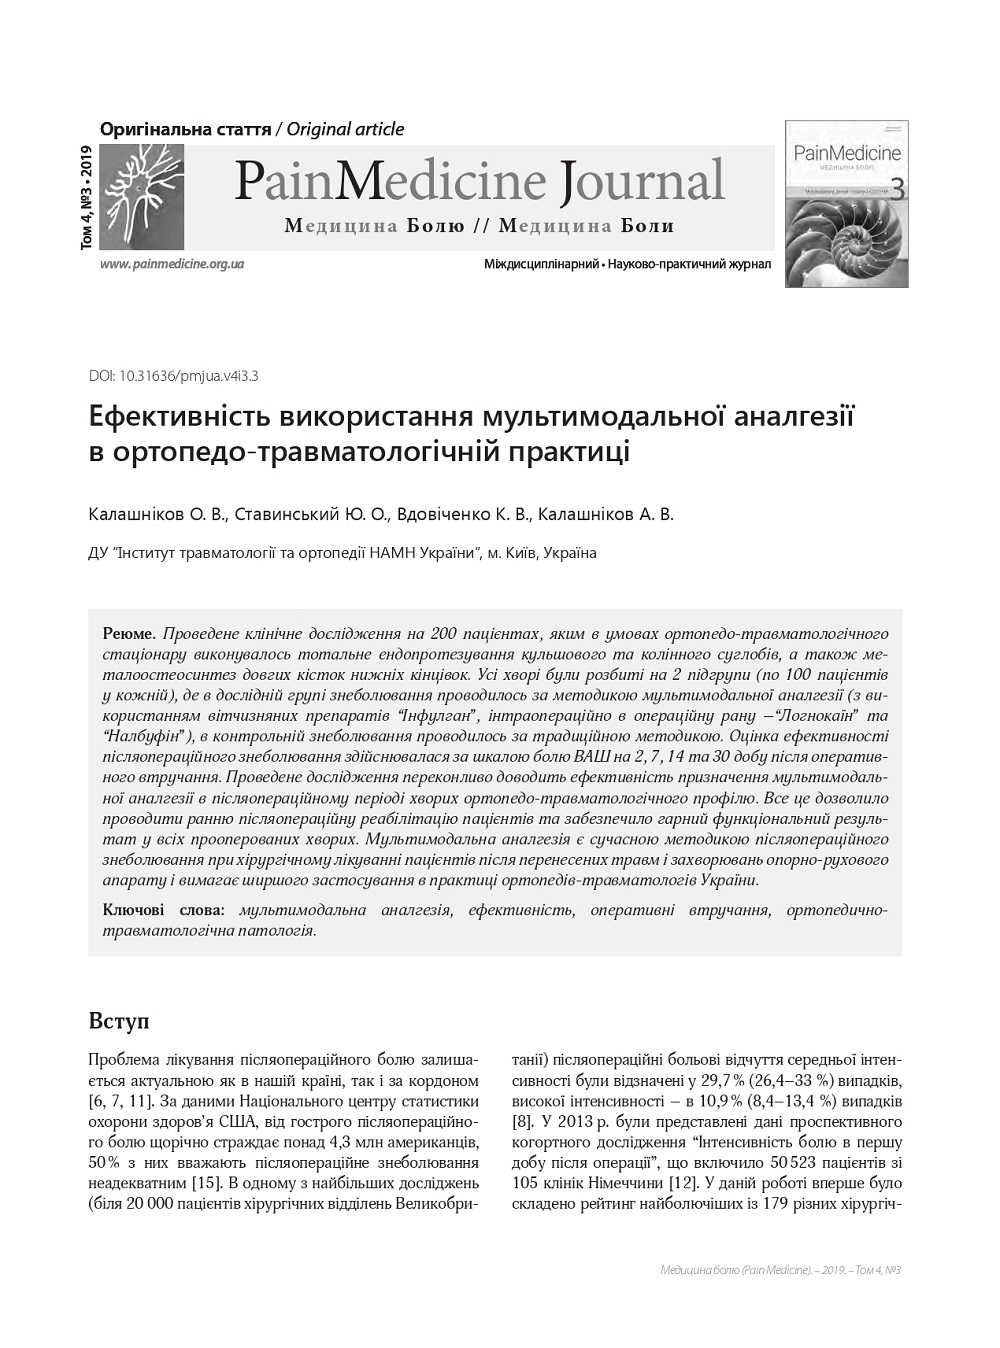 Efficiency of multimodal anаlgesia in orthopedics and traumatology